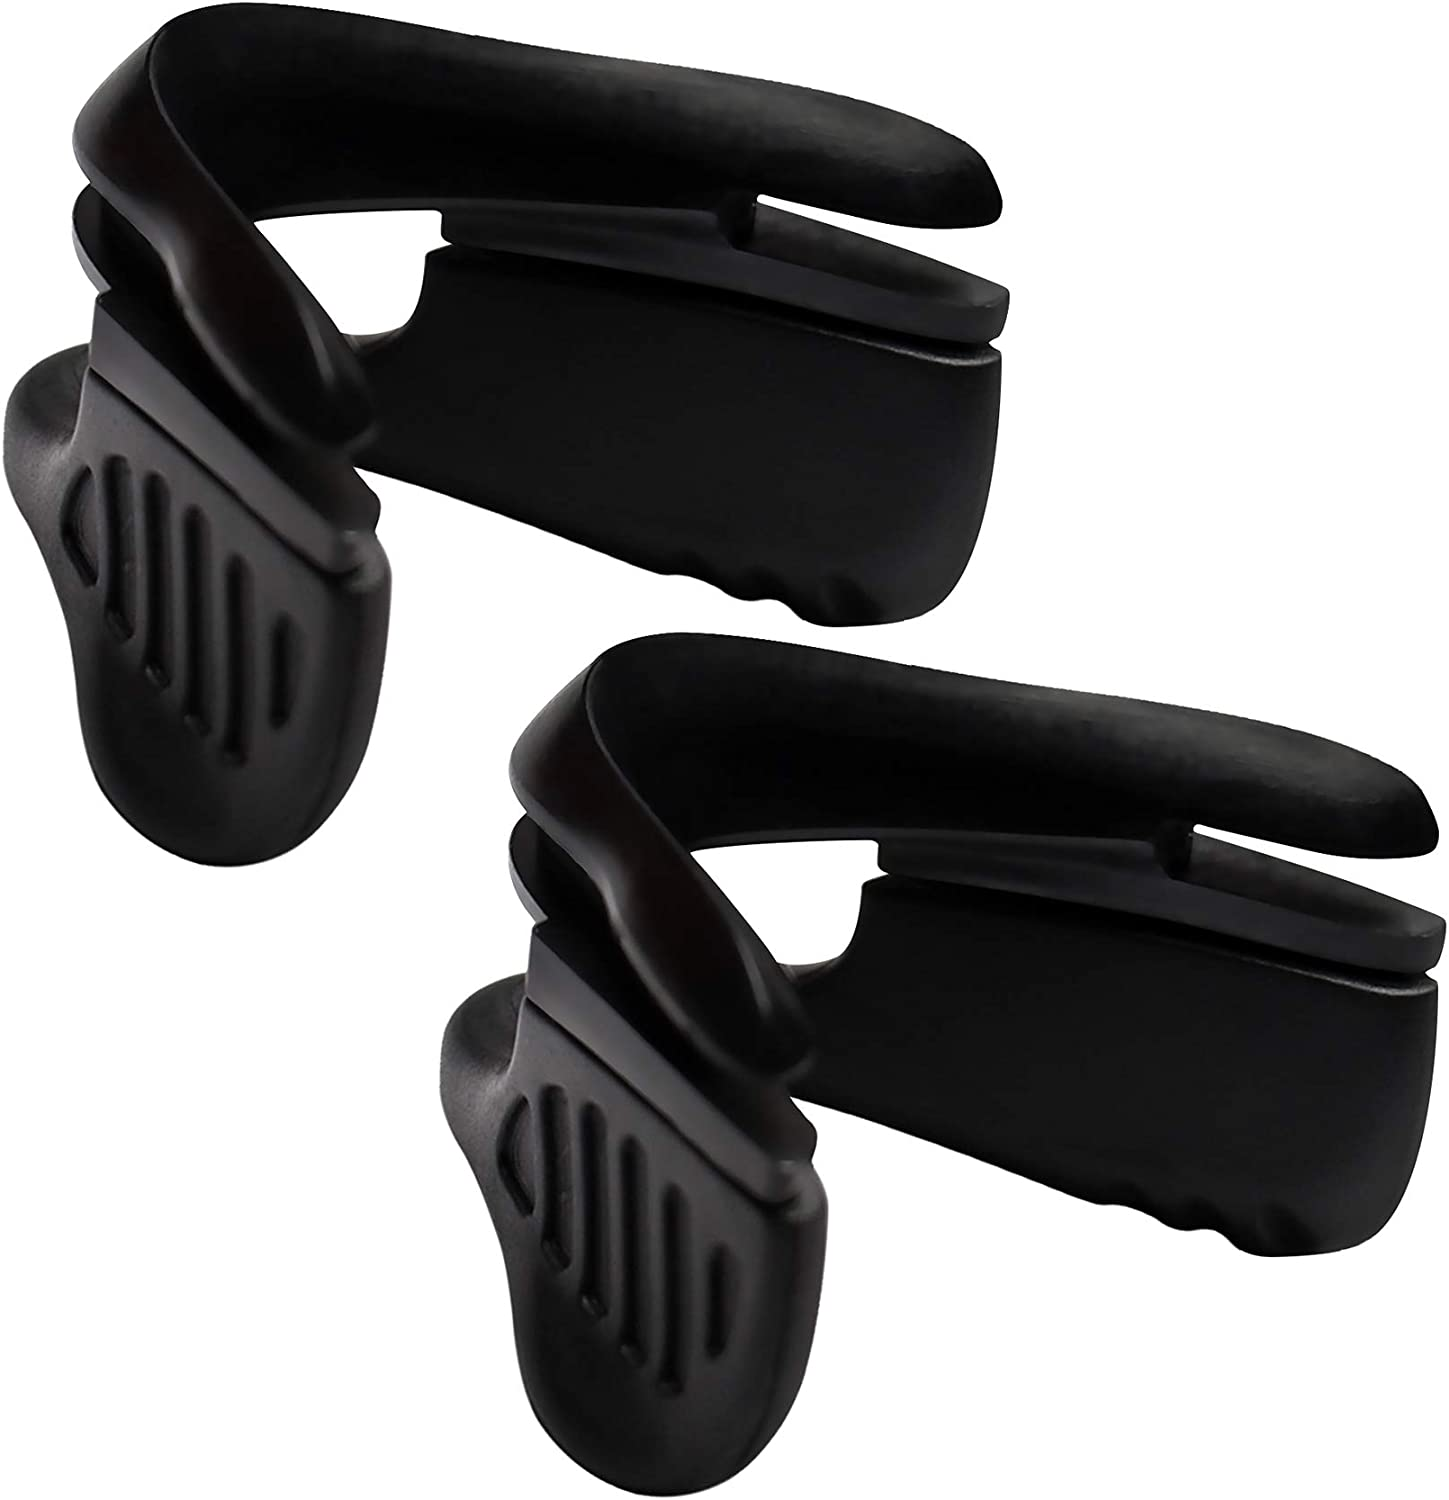 MYCOURAG Replacement Rubber Nose Pieces Compatible with Oakley M2 Frame OO9212 Sunglass